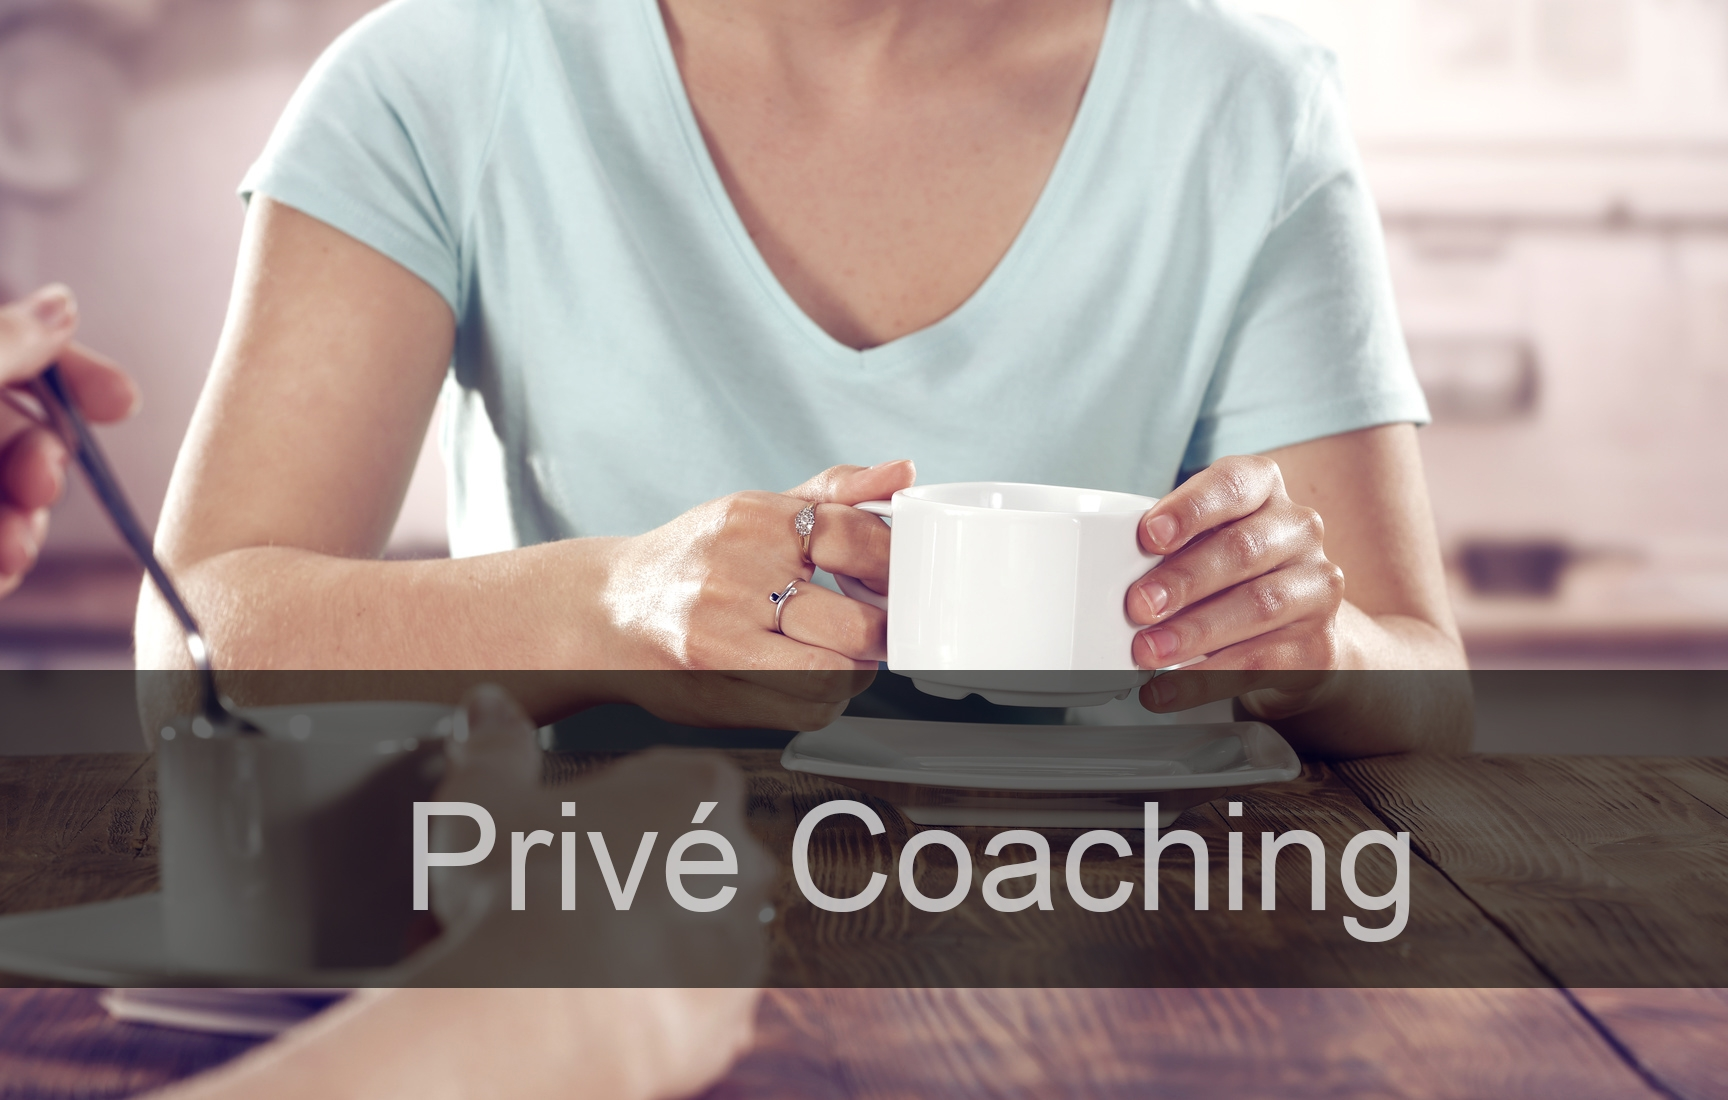 7qi Coaching Amsterdam prive